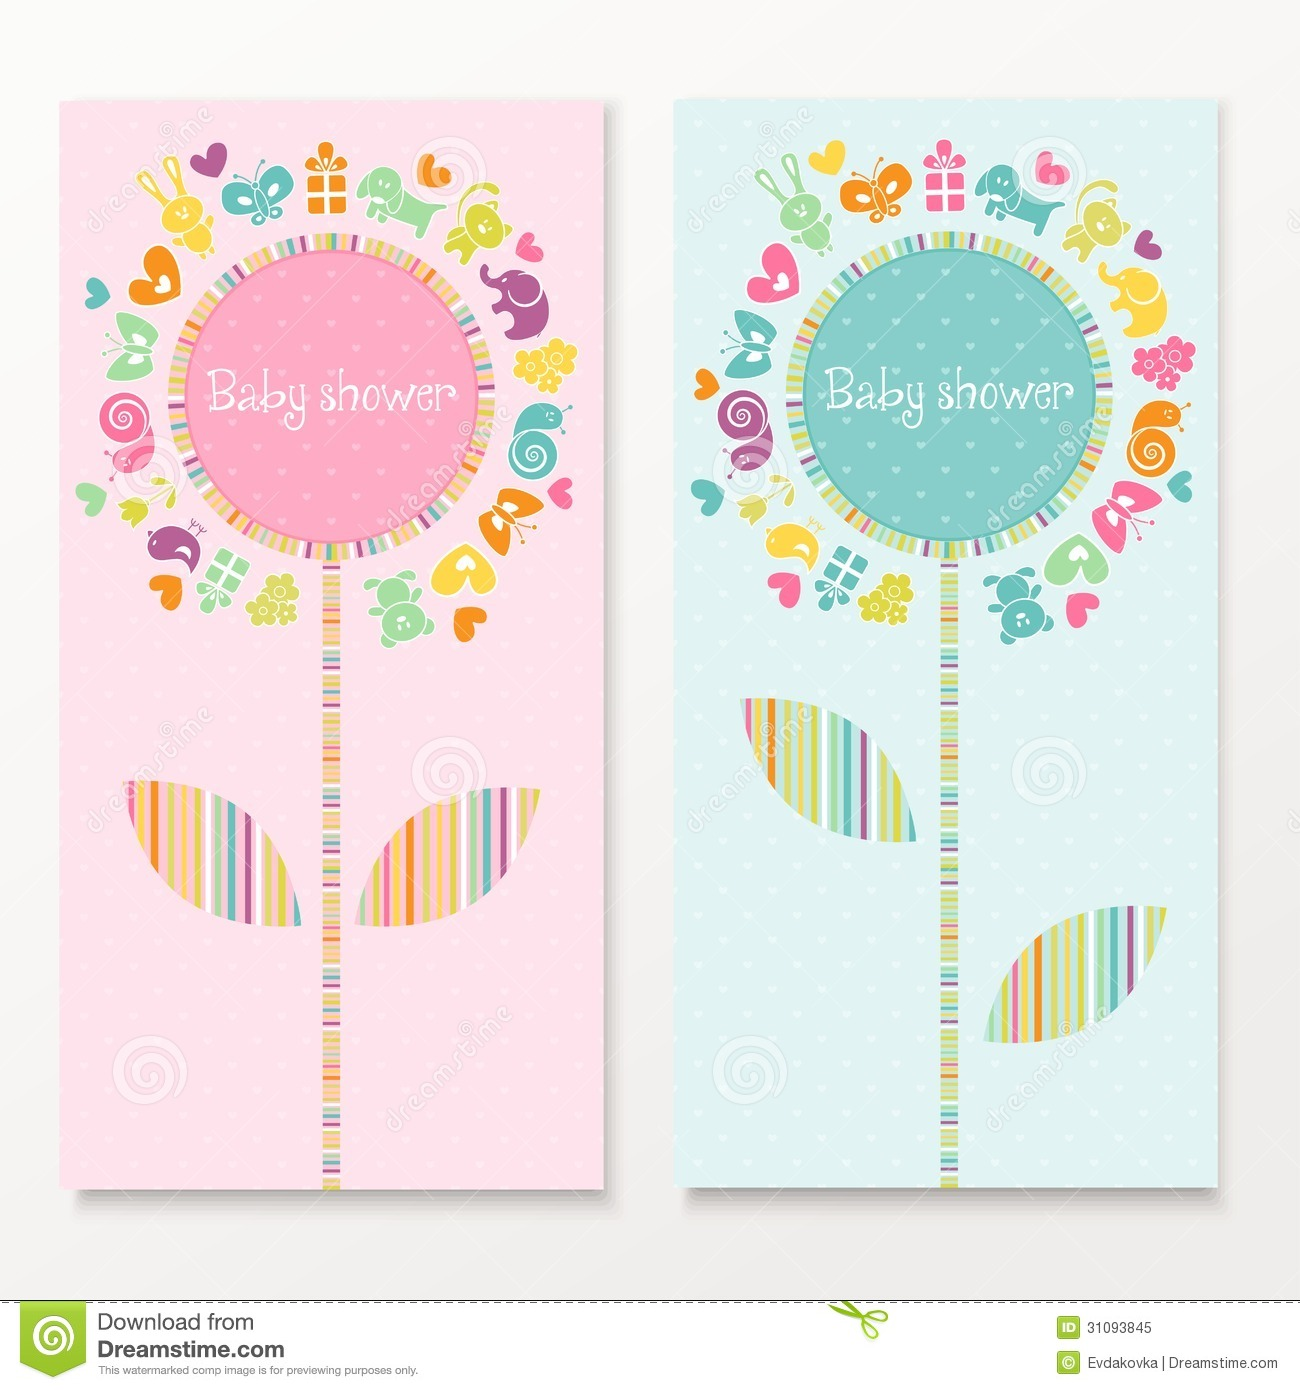 Baby shower card vector | free download.